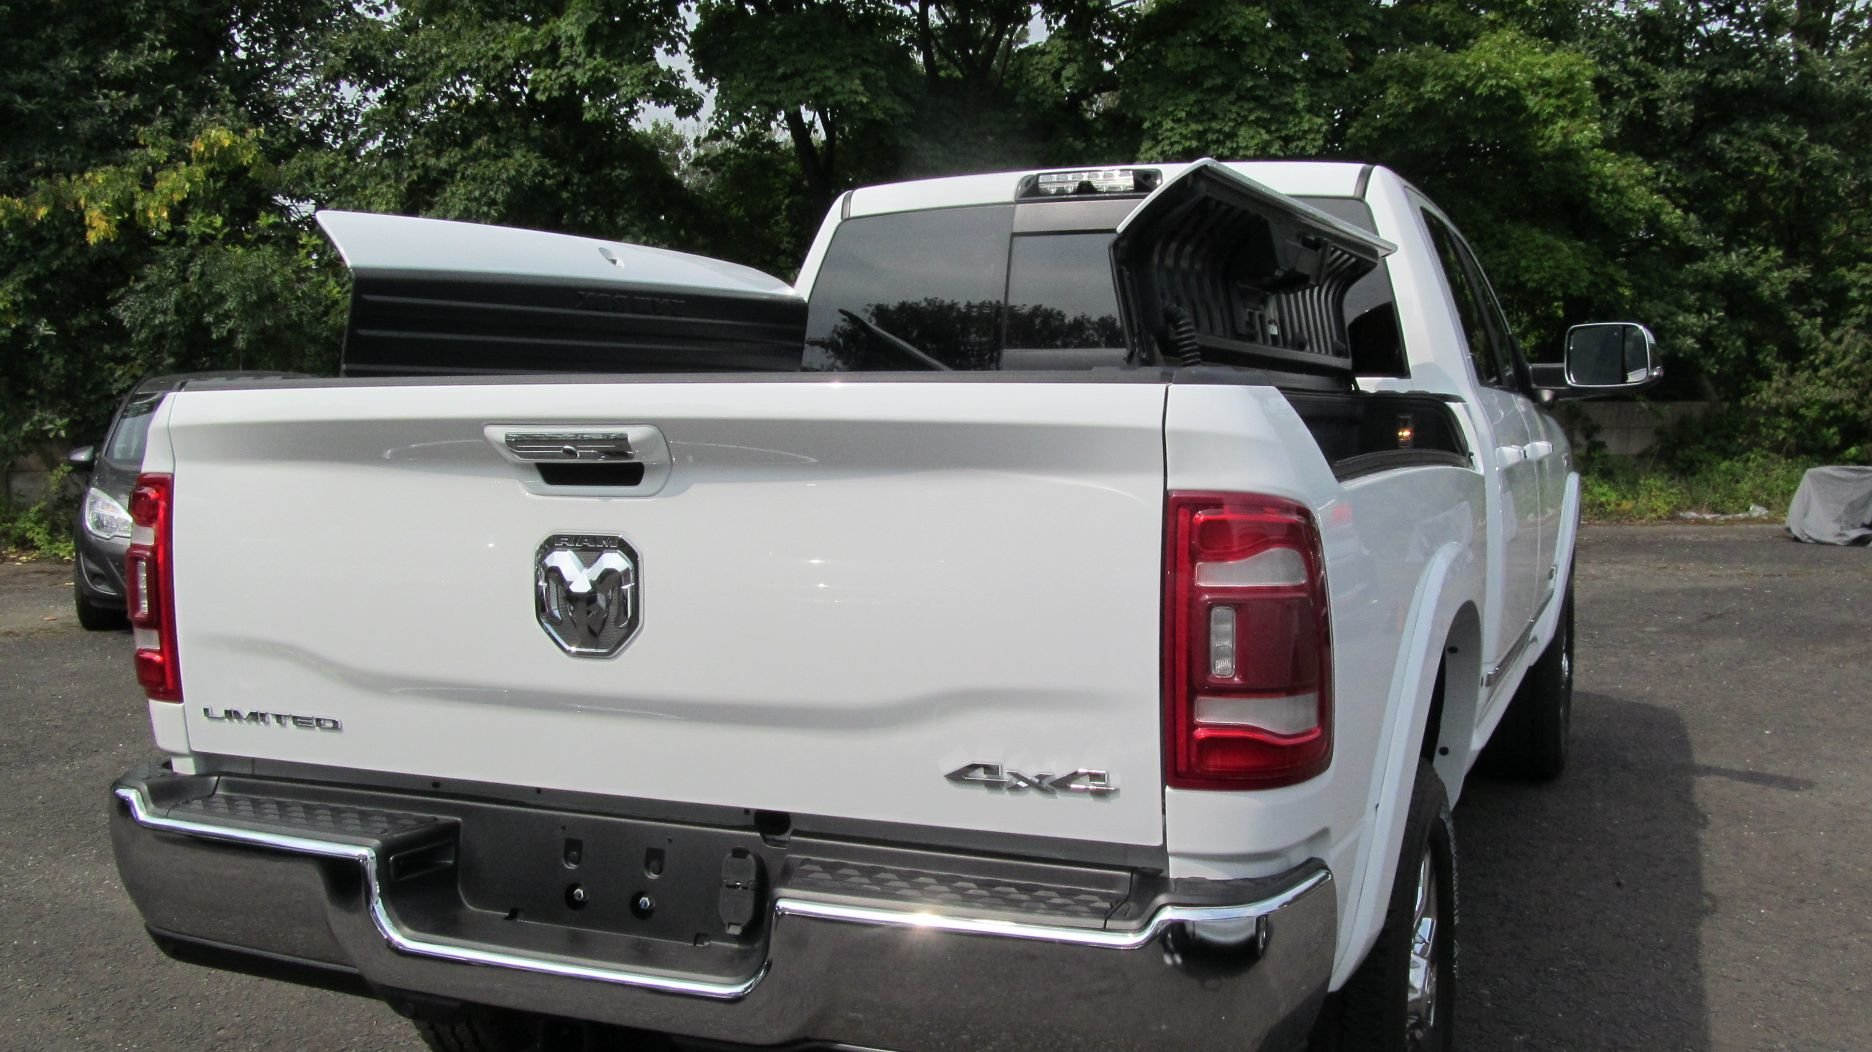 2020 Dodge RAM 2500 6.4L V8 LIMITED 4x4 Crew Cab For Sale (picture 4 of 6)